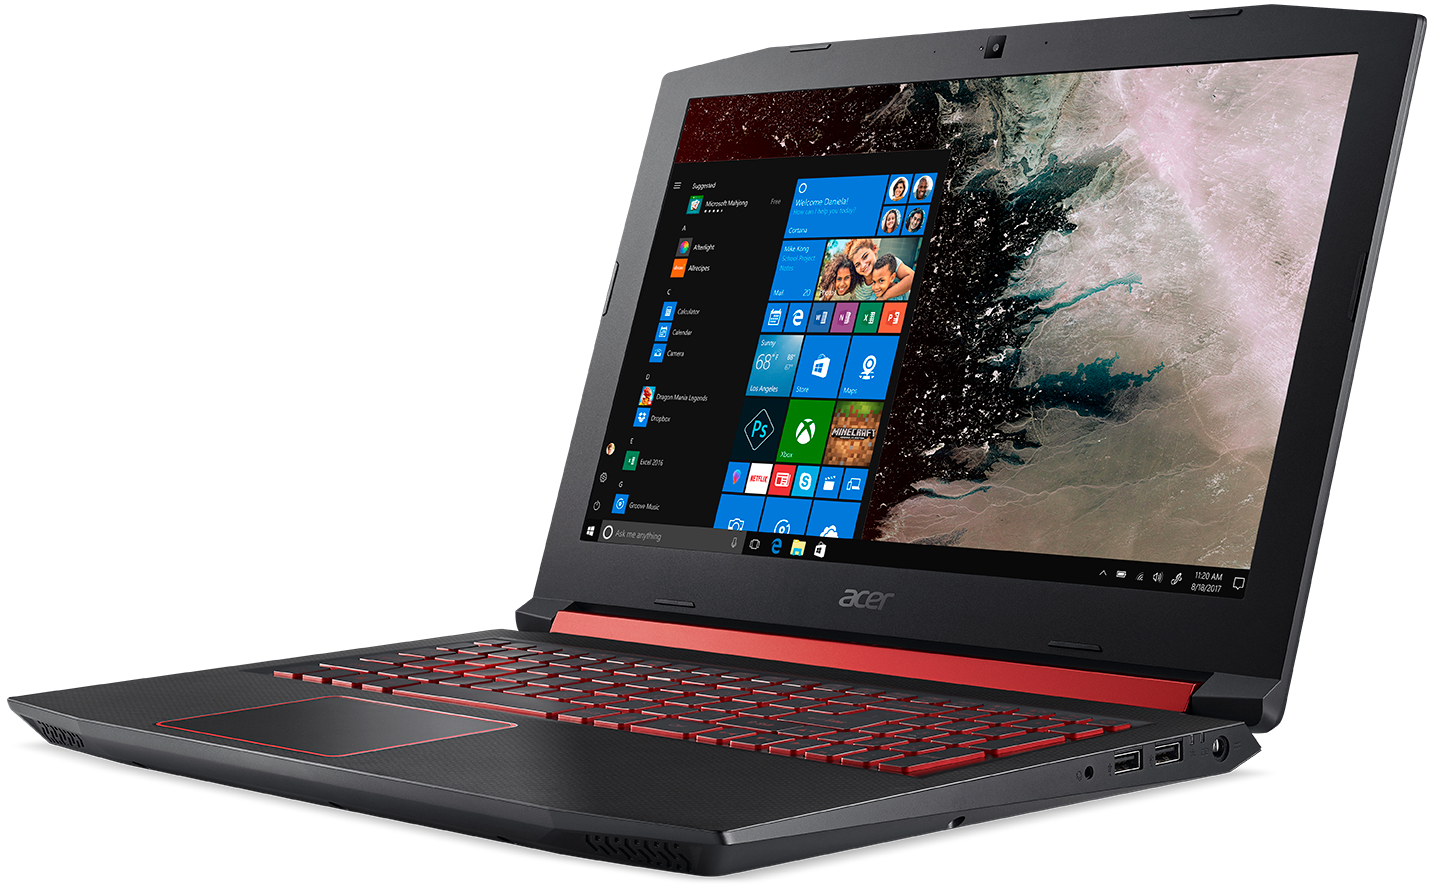 Acer Unveils Nitro 5: 15 6-inch Gaming Laptop with AMD Ryzen Mobile